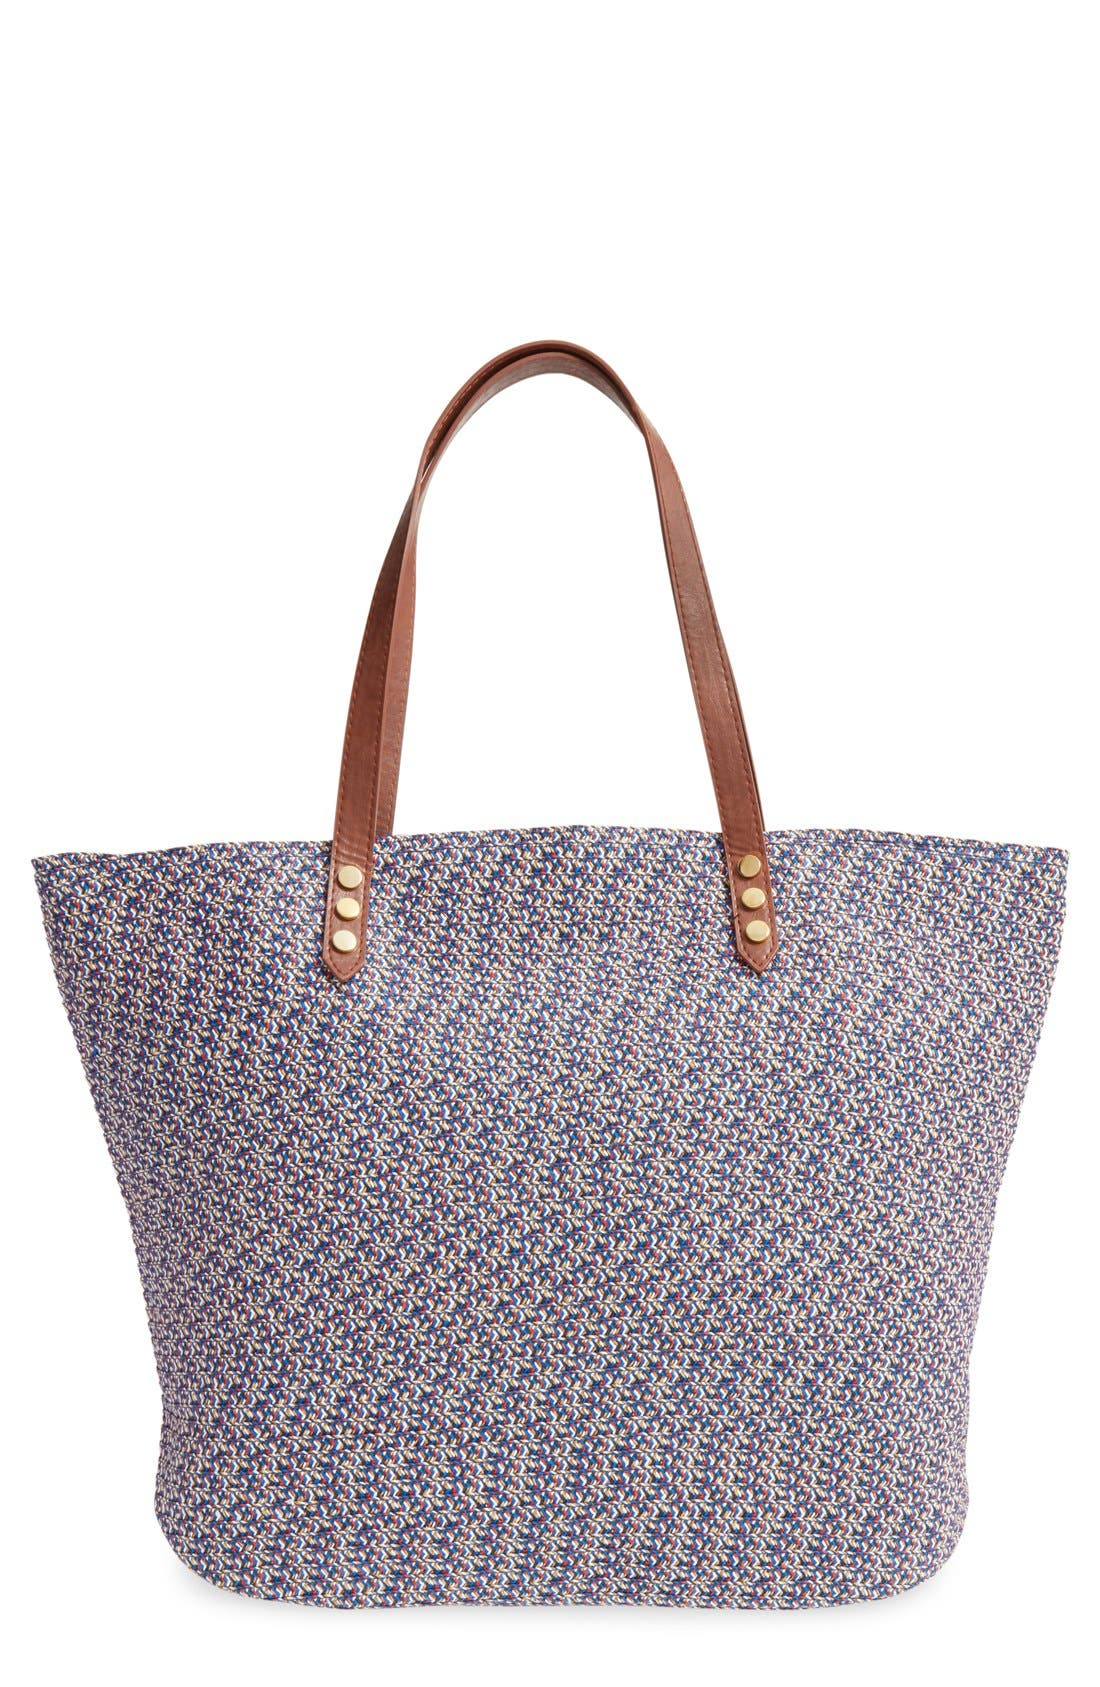 Woven Straw Tote,                             Main thumbnail 1, color,                             440